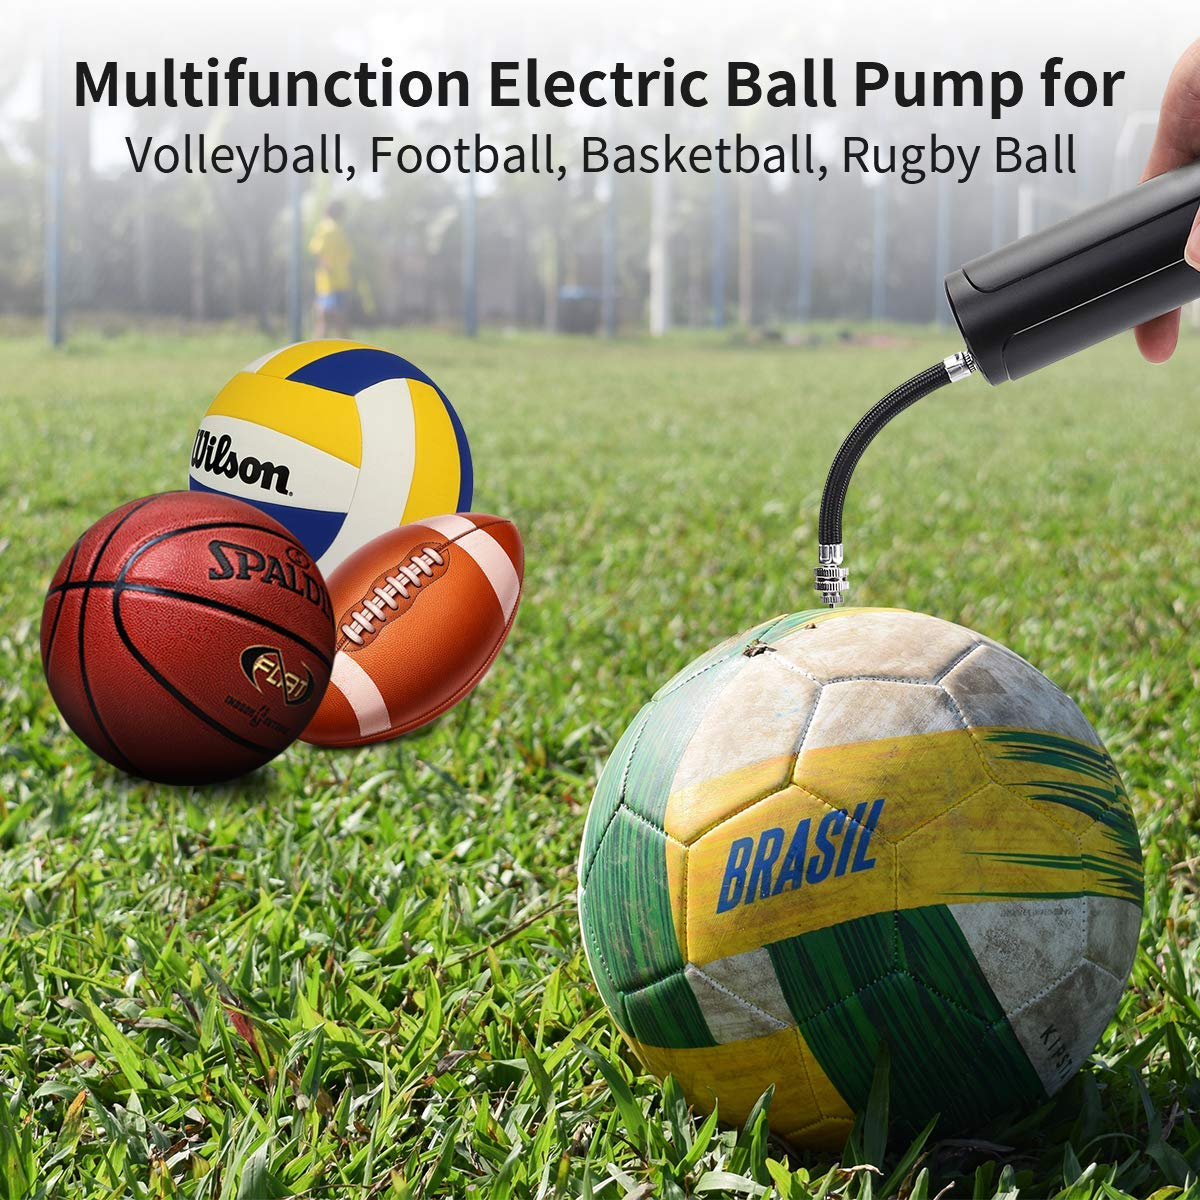 morpilot Football Pump, Electric Ball Pump with Needles, Wireless Handheld Multifunctional Automatic Fast Air Pump for Basketball, Soccer, Rugby Ball, Volleyball, Handball and other Inflatable Balls